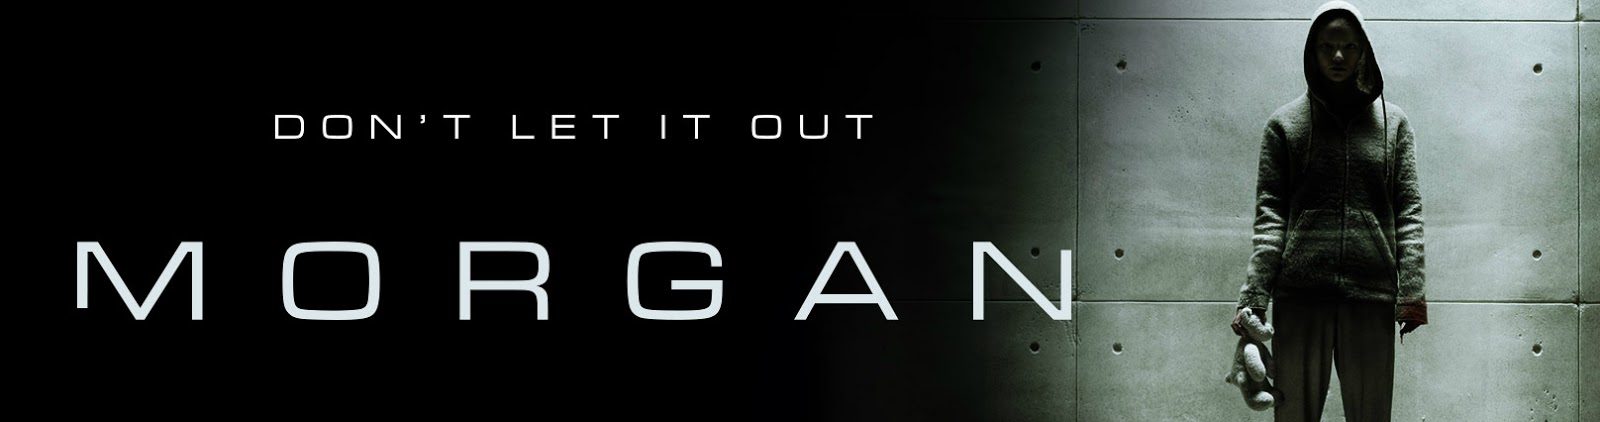 Morgan (2016) Film Banner